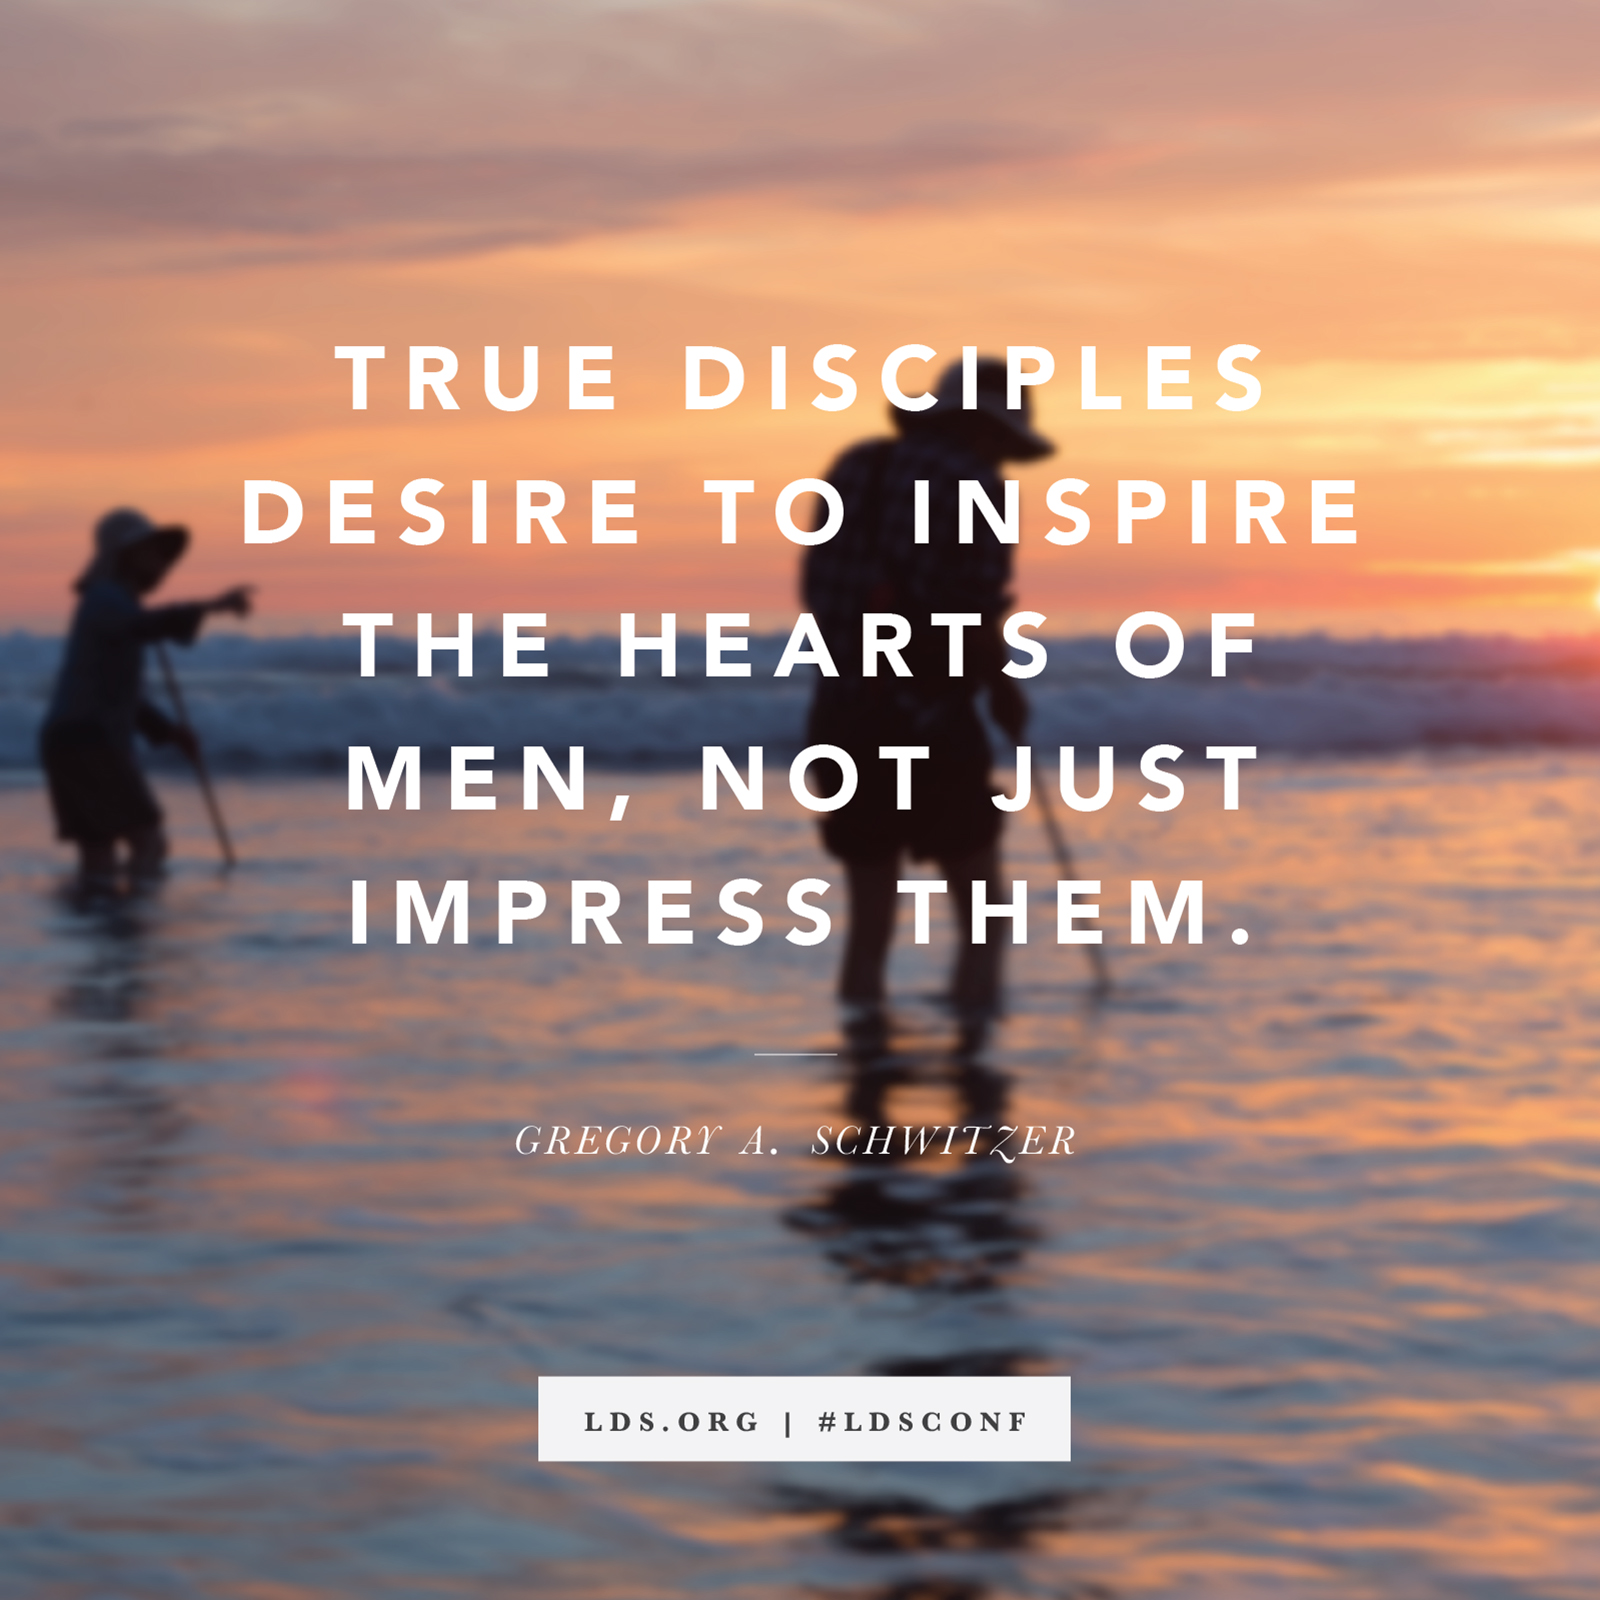 Inspiring Quotes About Friendship True Disciples